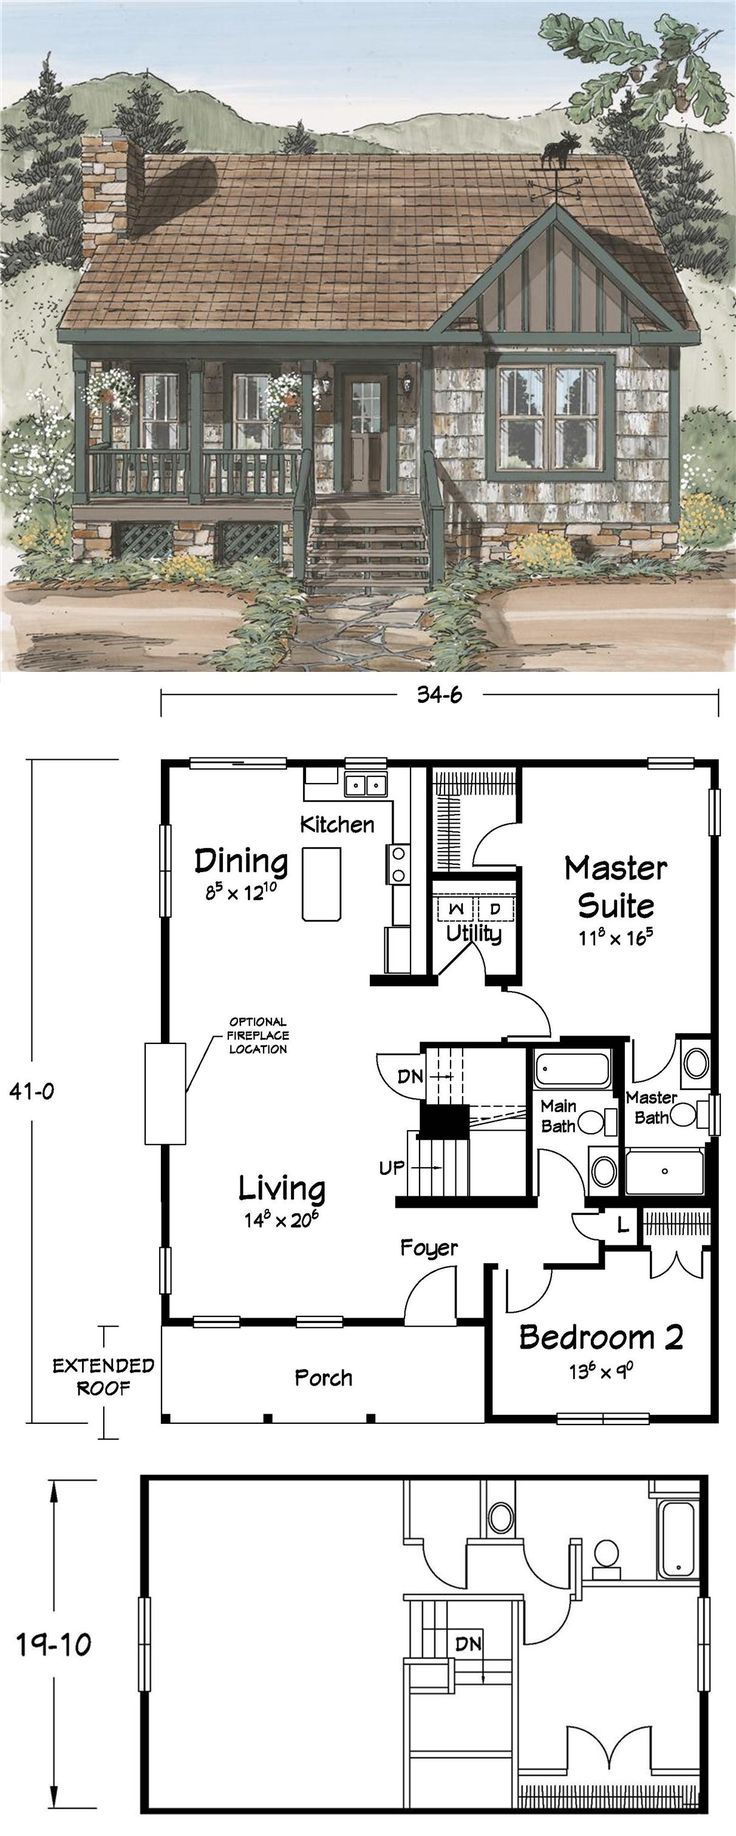 Cute floor plans tiny homes pinterest cabin small for Small house design 3rd floor